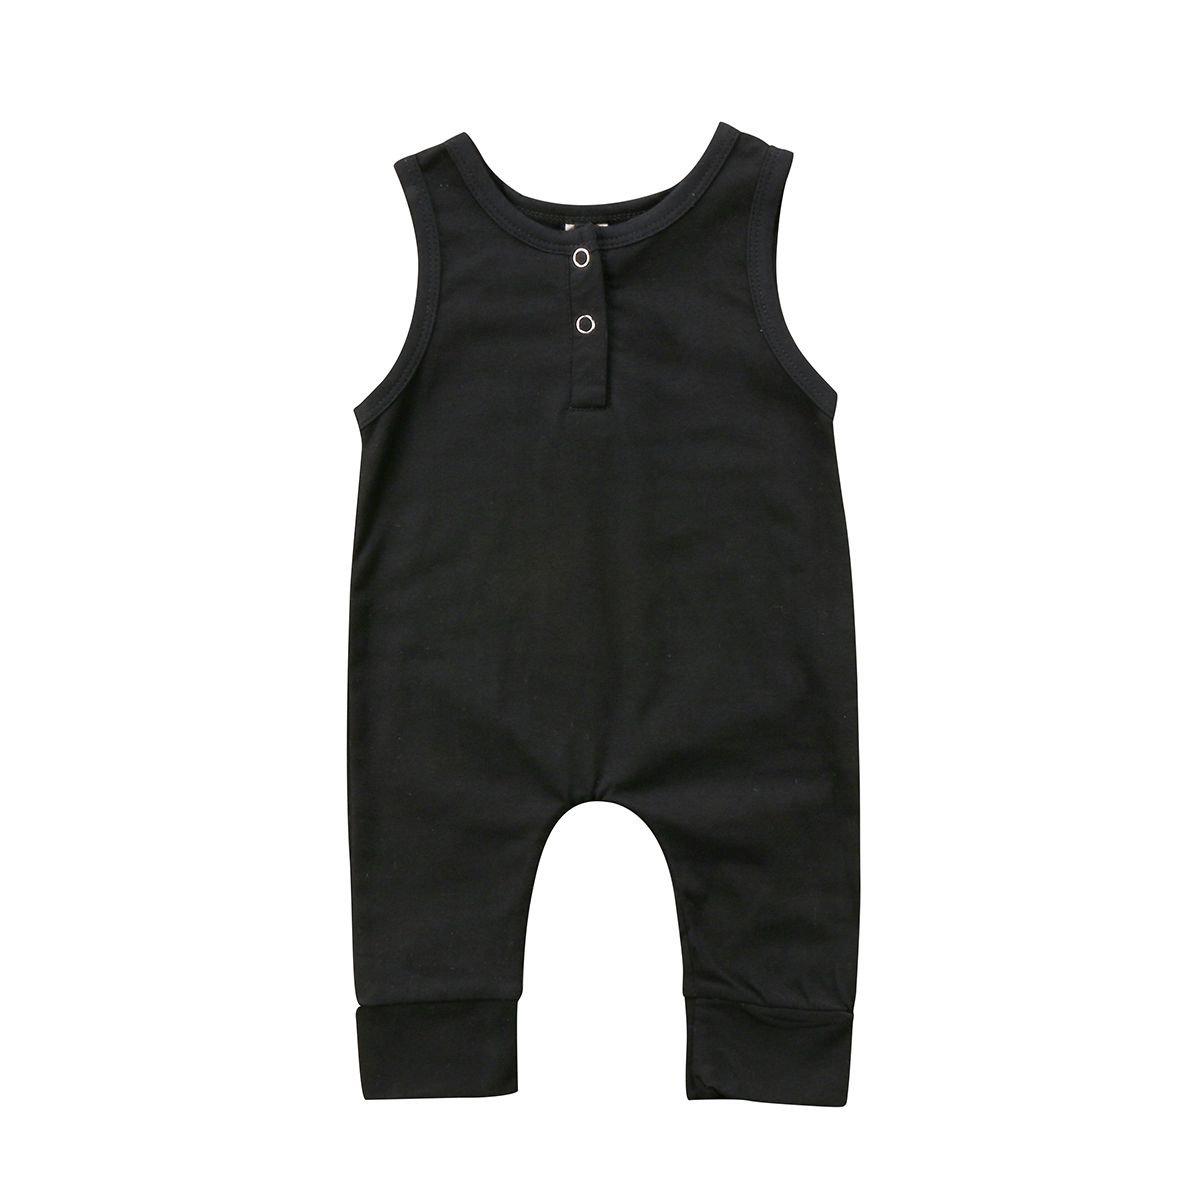 0-18M Infant Newborn Baby Boys Girls Clothes sleeveless Cotton Black   Romper   Jumpsuit Outfits Summer baby clothing